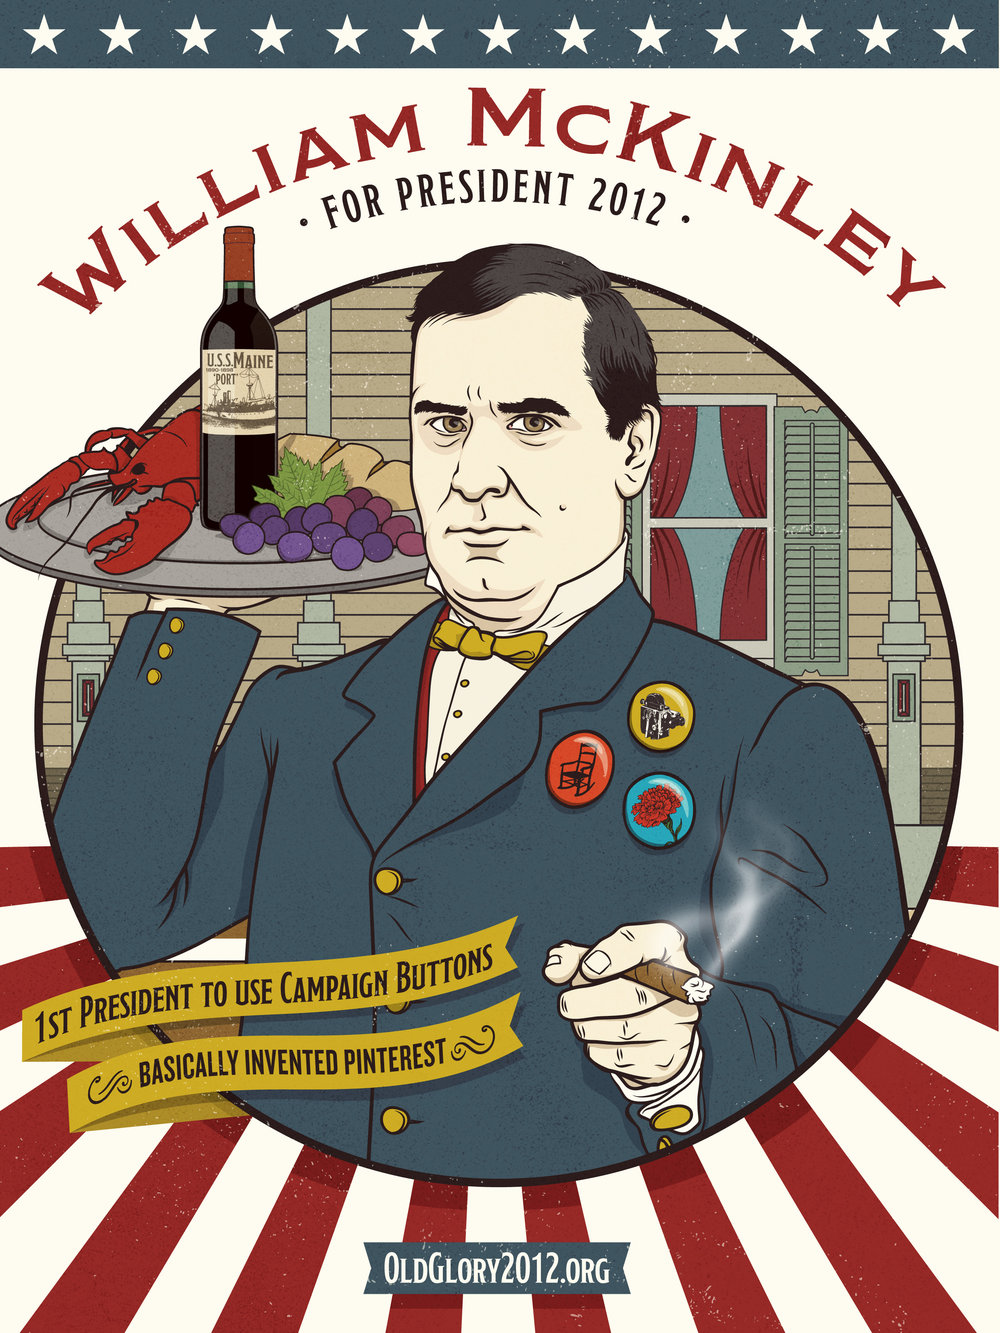 WilliamMcKinley_HighRes_NoDSC.jpg